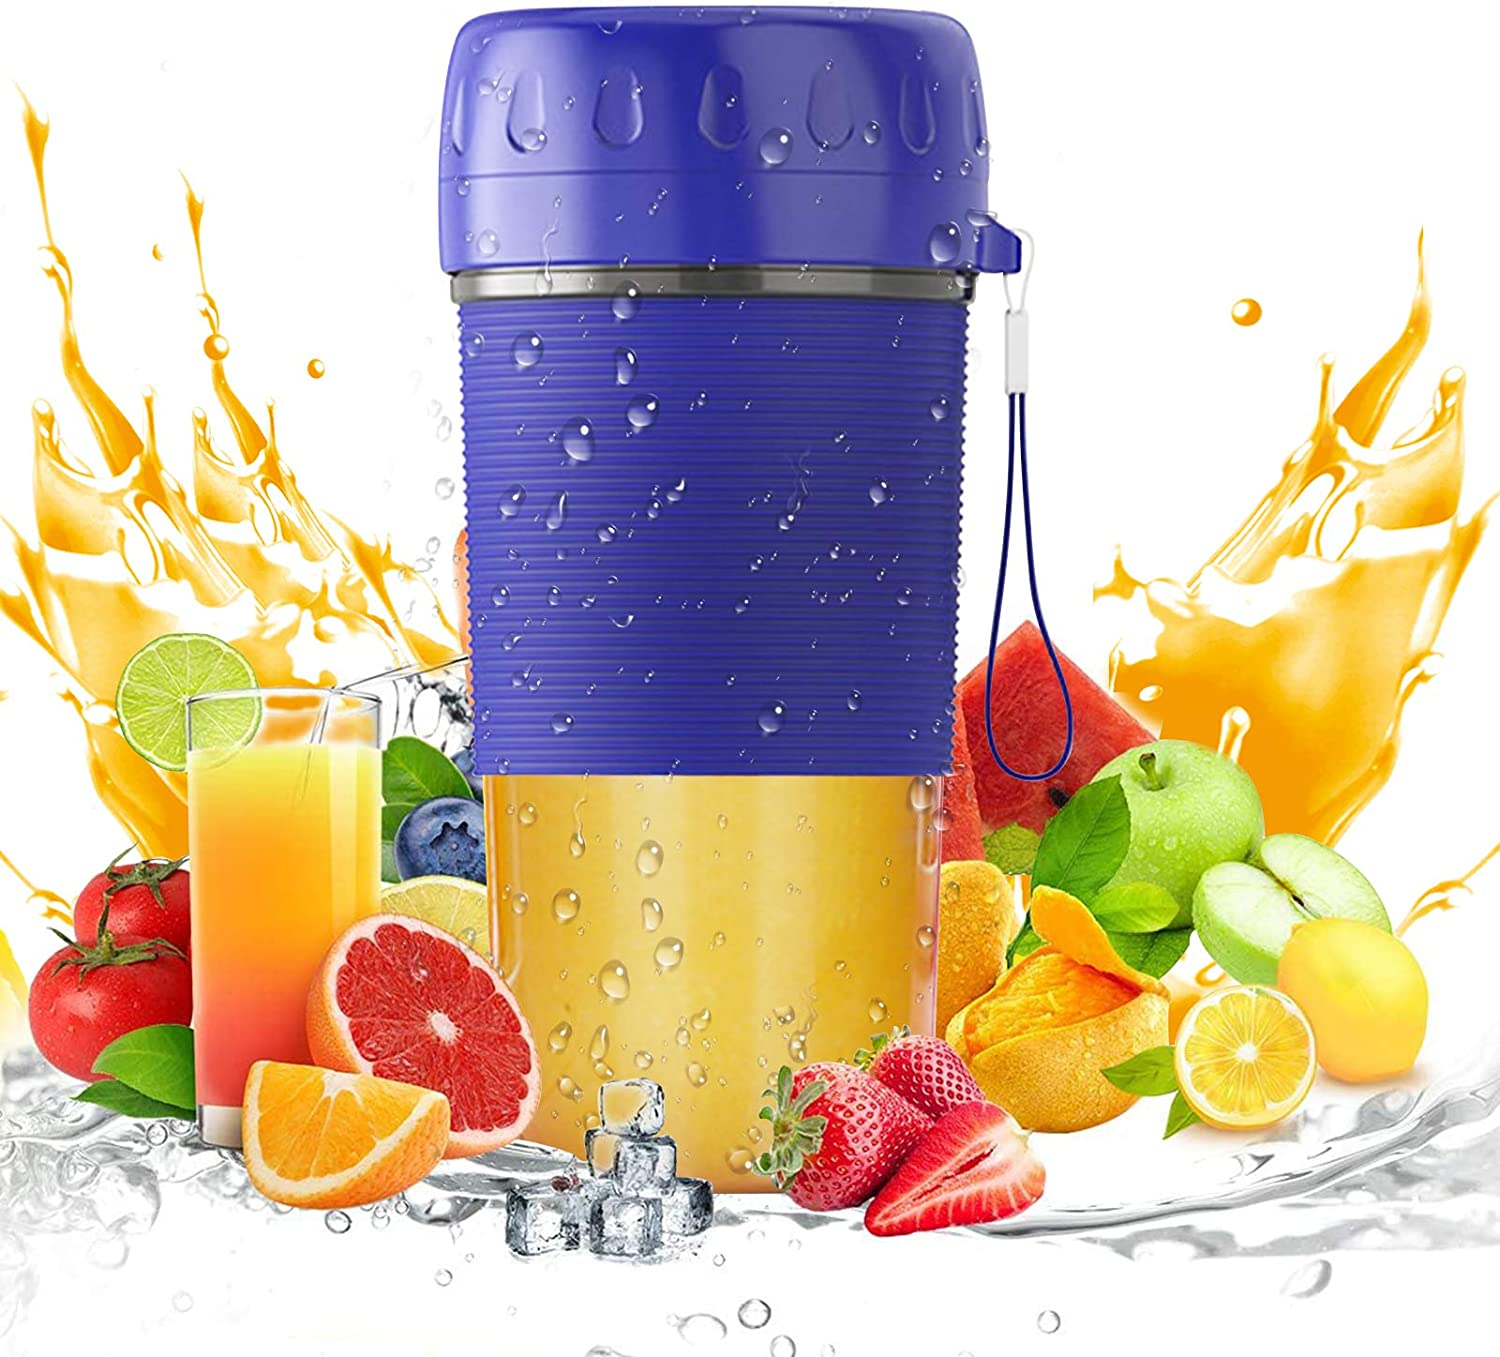 Portable Blender, Personal Size Blender USB Rechargeable for Smoothies and Shakes, Mini Jucier Cup Strong Power Cordless Blenders Fruit Mixer for Home Outdoor Picnic Travel Gym,with BPA Free, 300ml